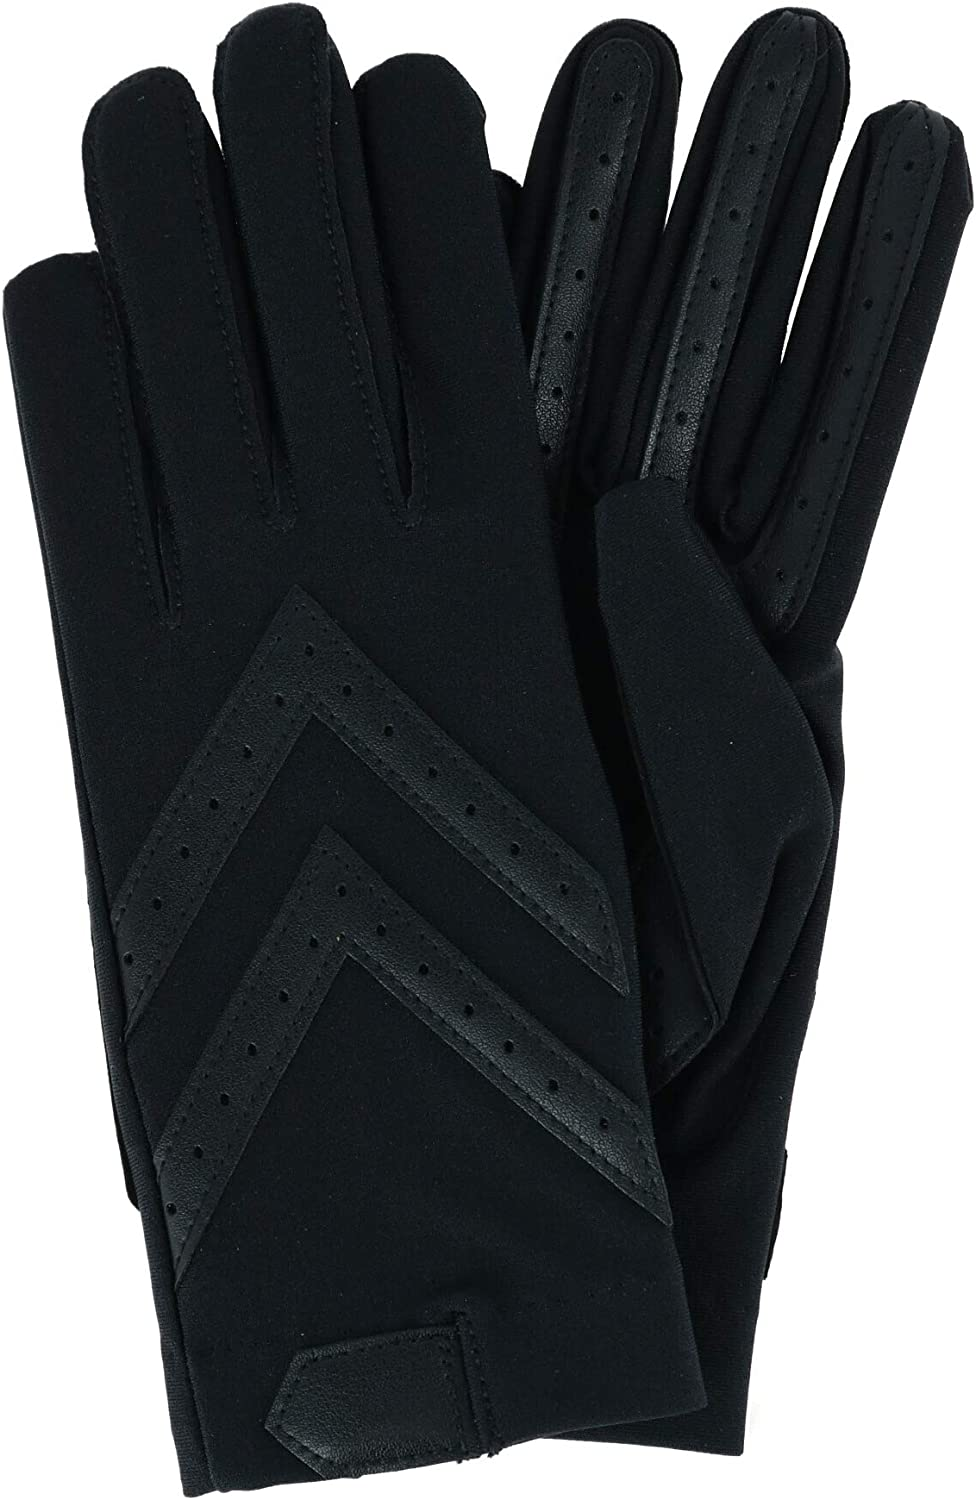 Isotoner Women's Unlined Spandex Touchscreen Winter Driving Glove